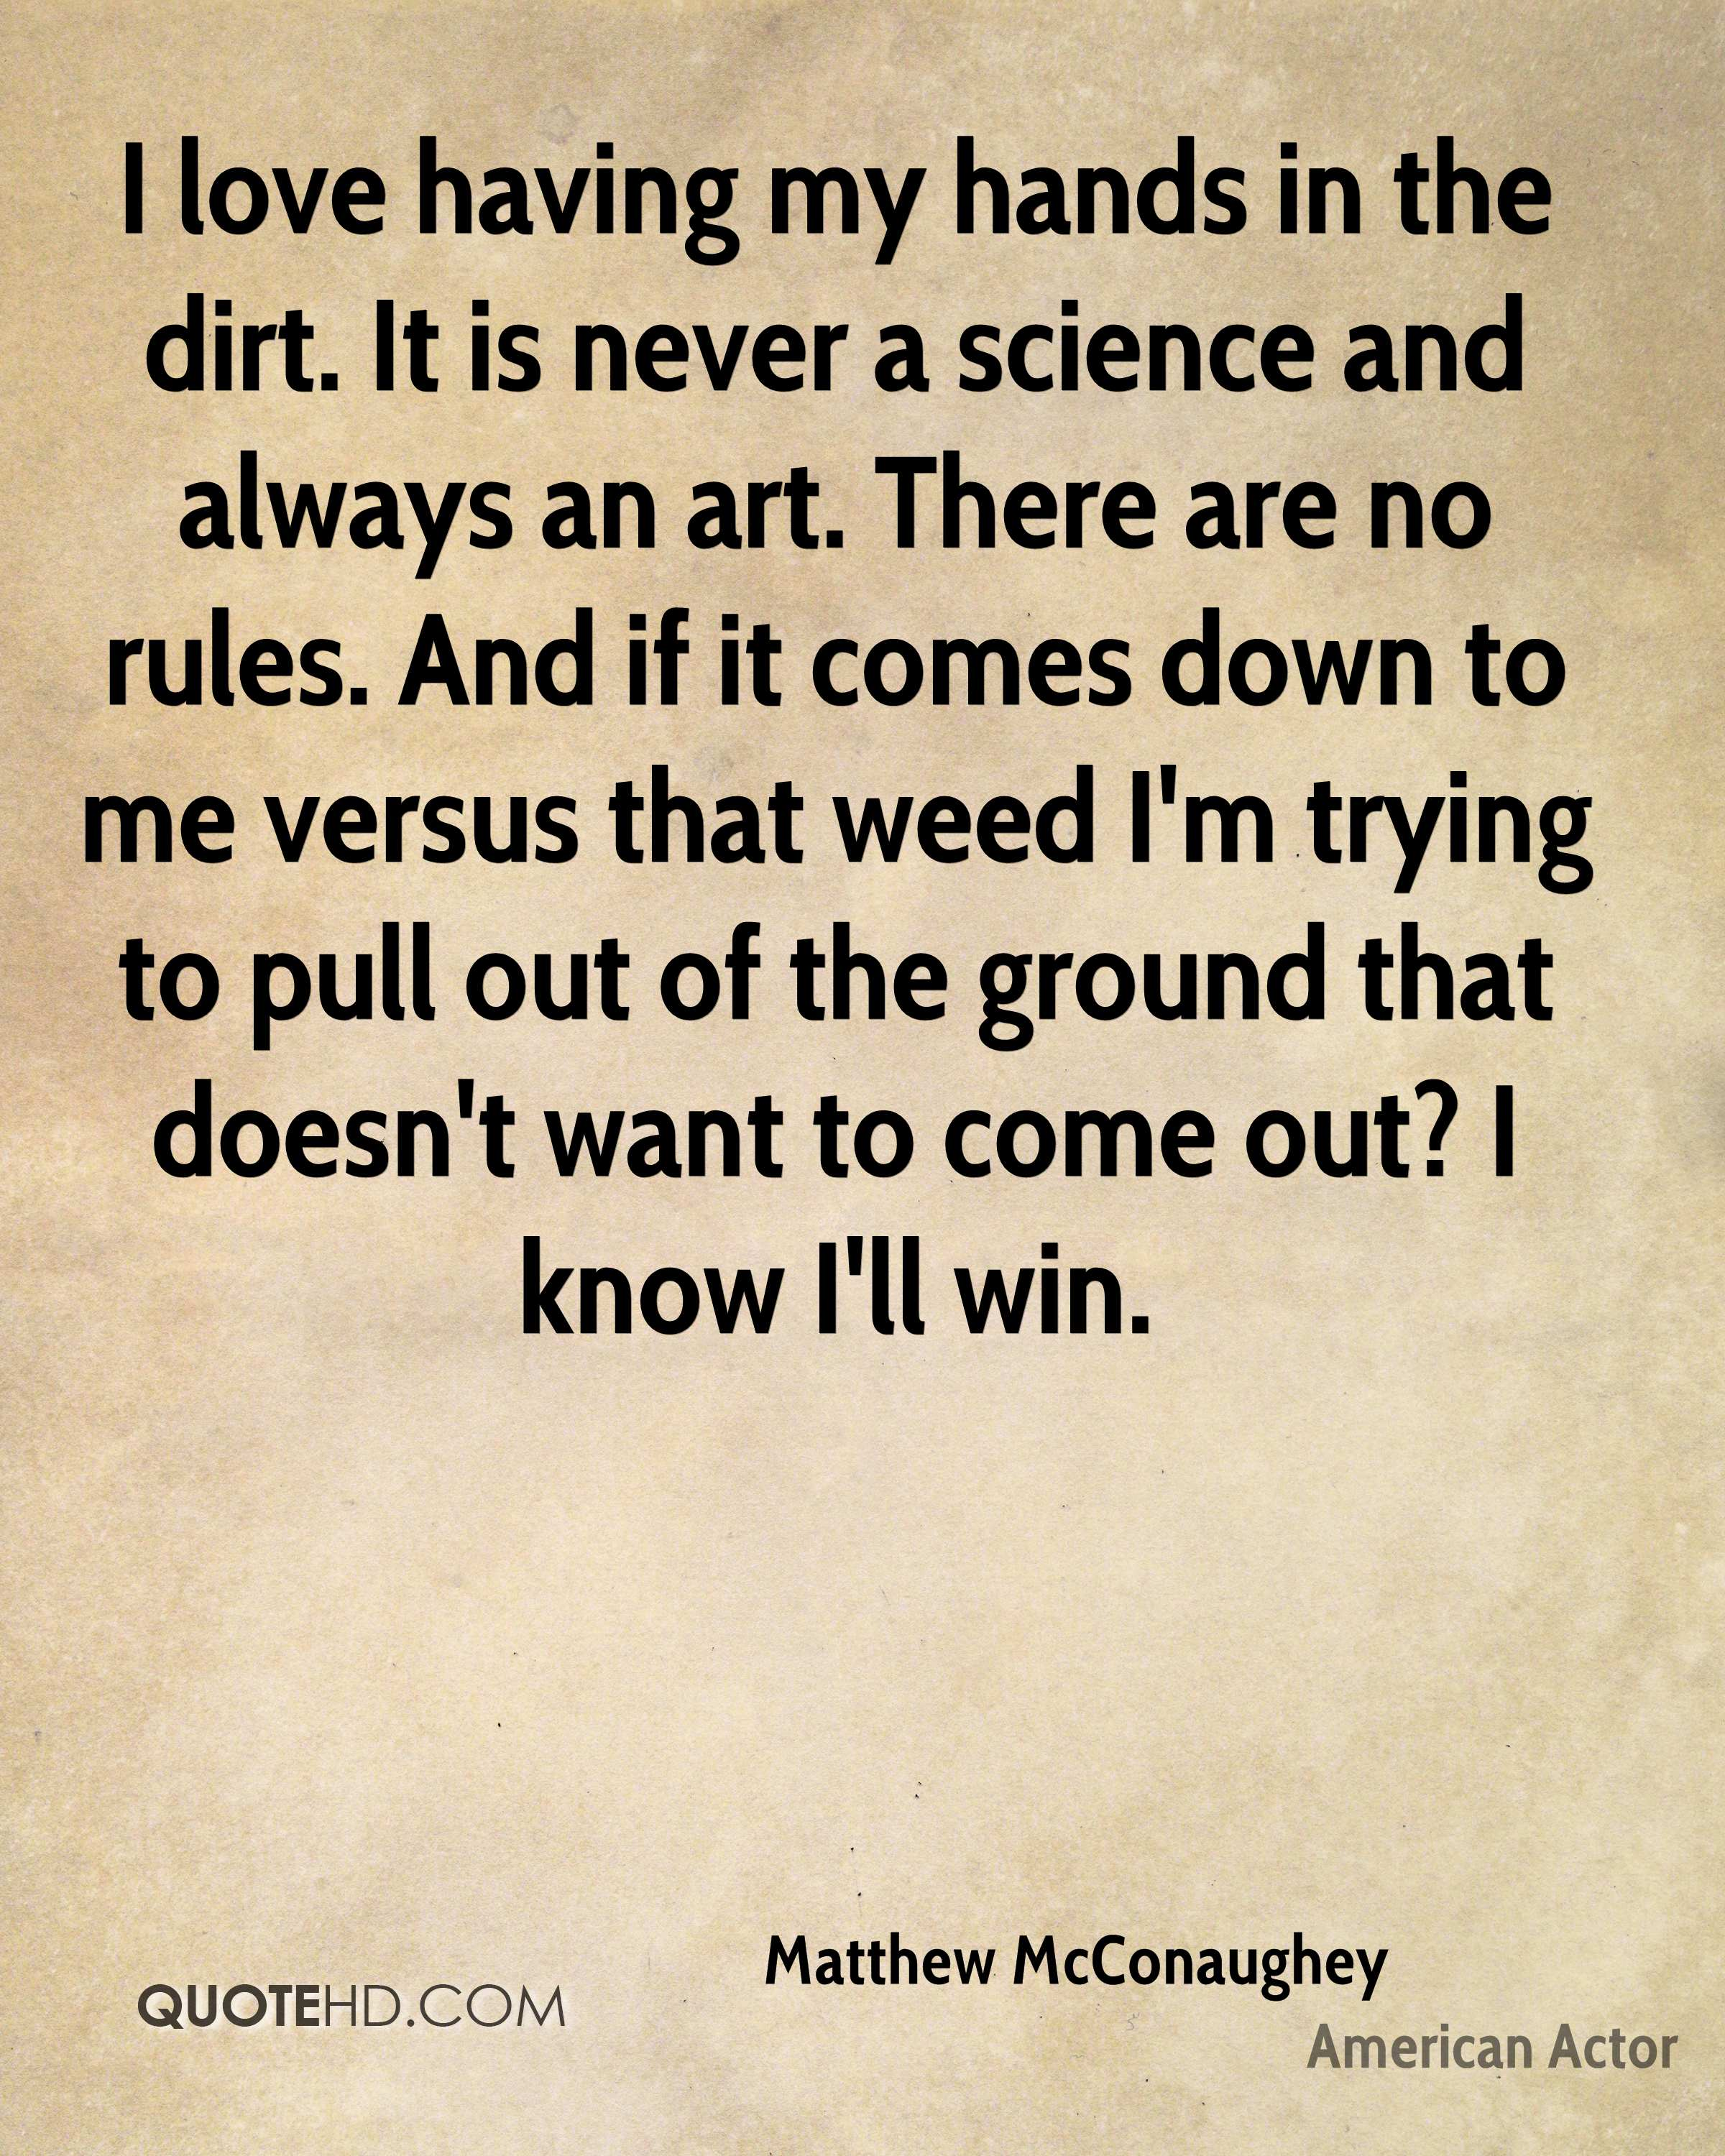 I love having my hands in the dirt. It is never a science and always an art. There are no rules. And if it comes down to me versus that weed I'm trying to pull out of the ground that doesn't want to come out? I know I'll win.